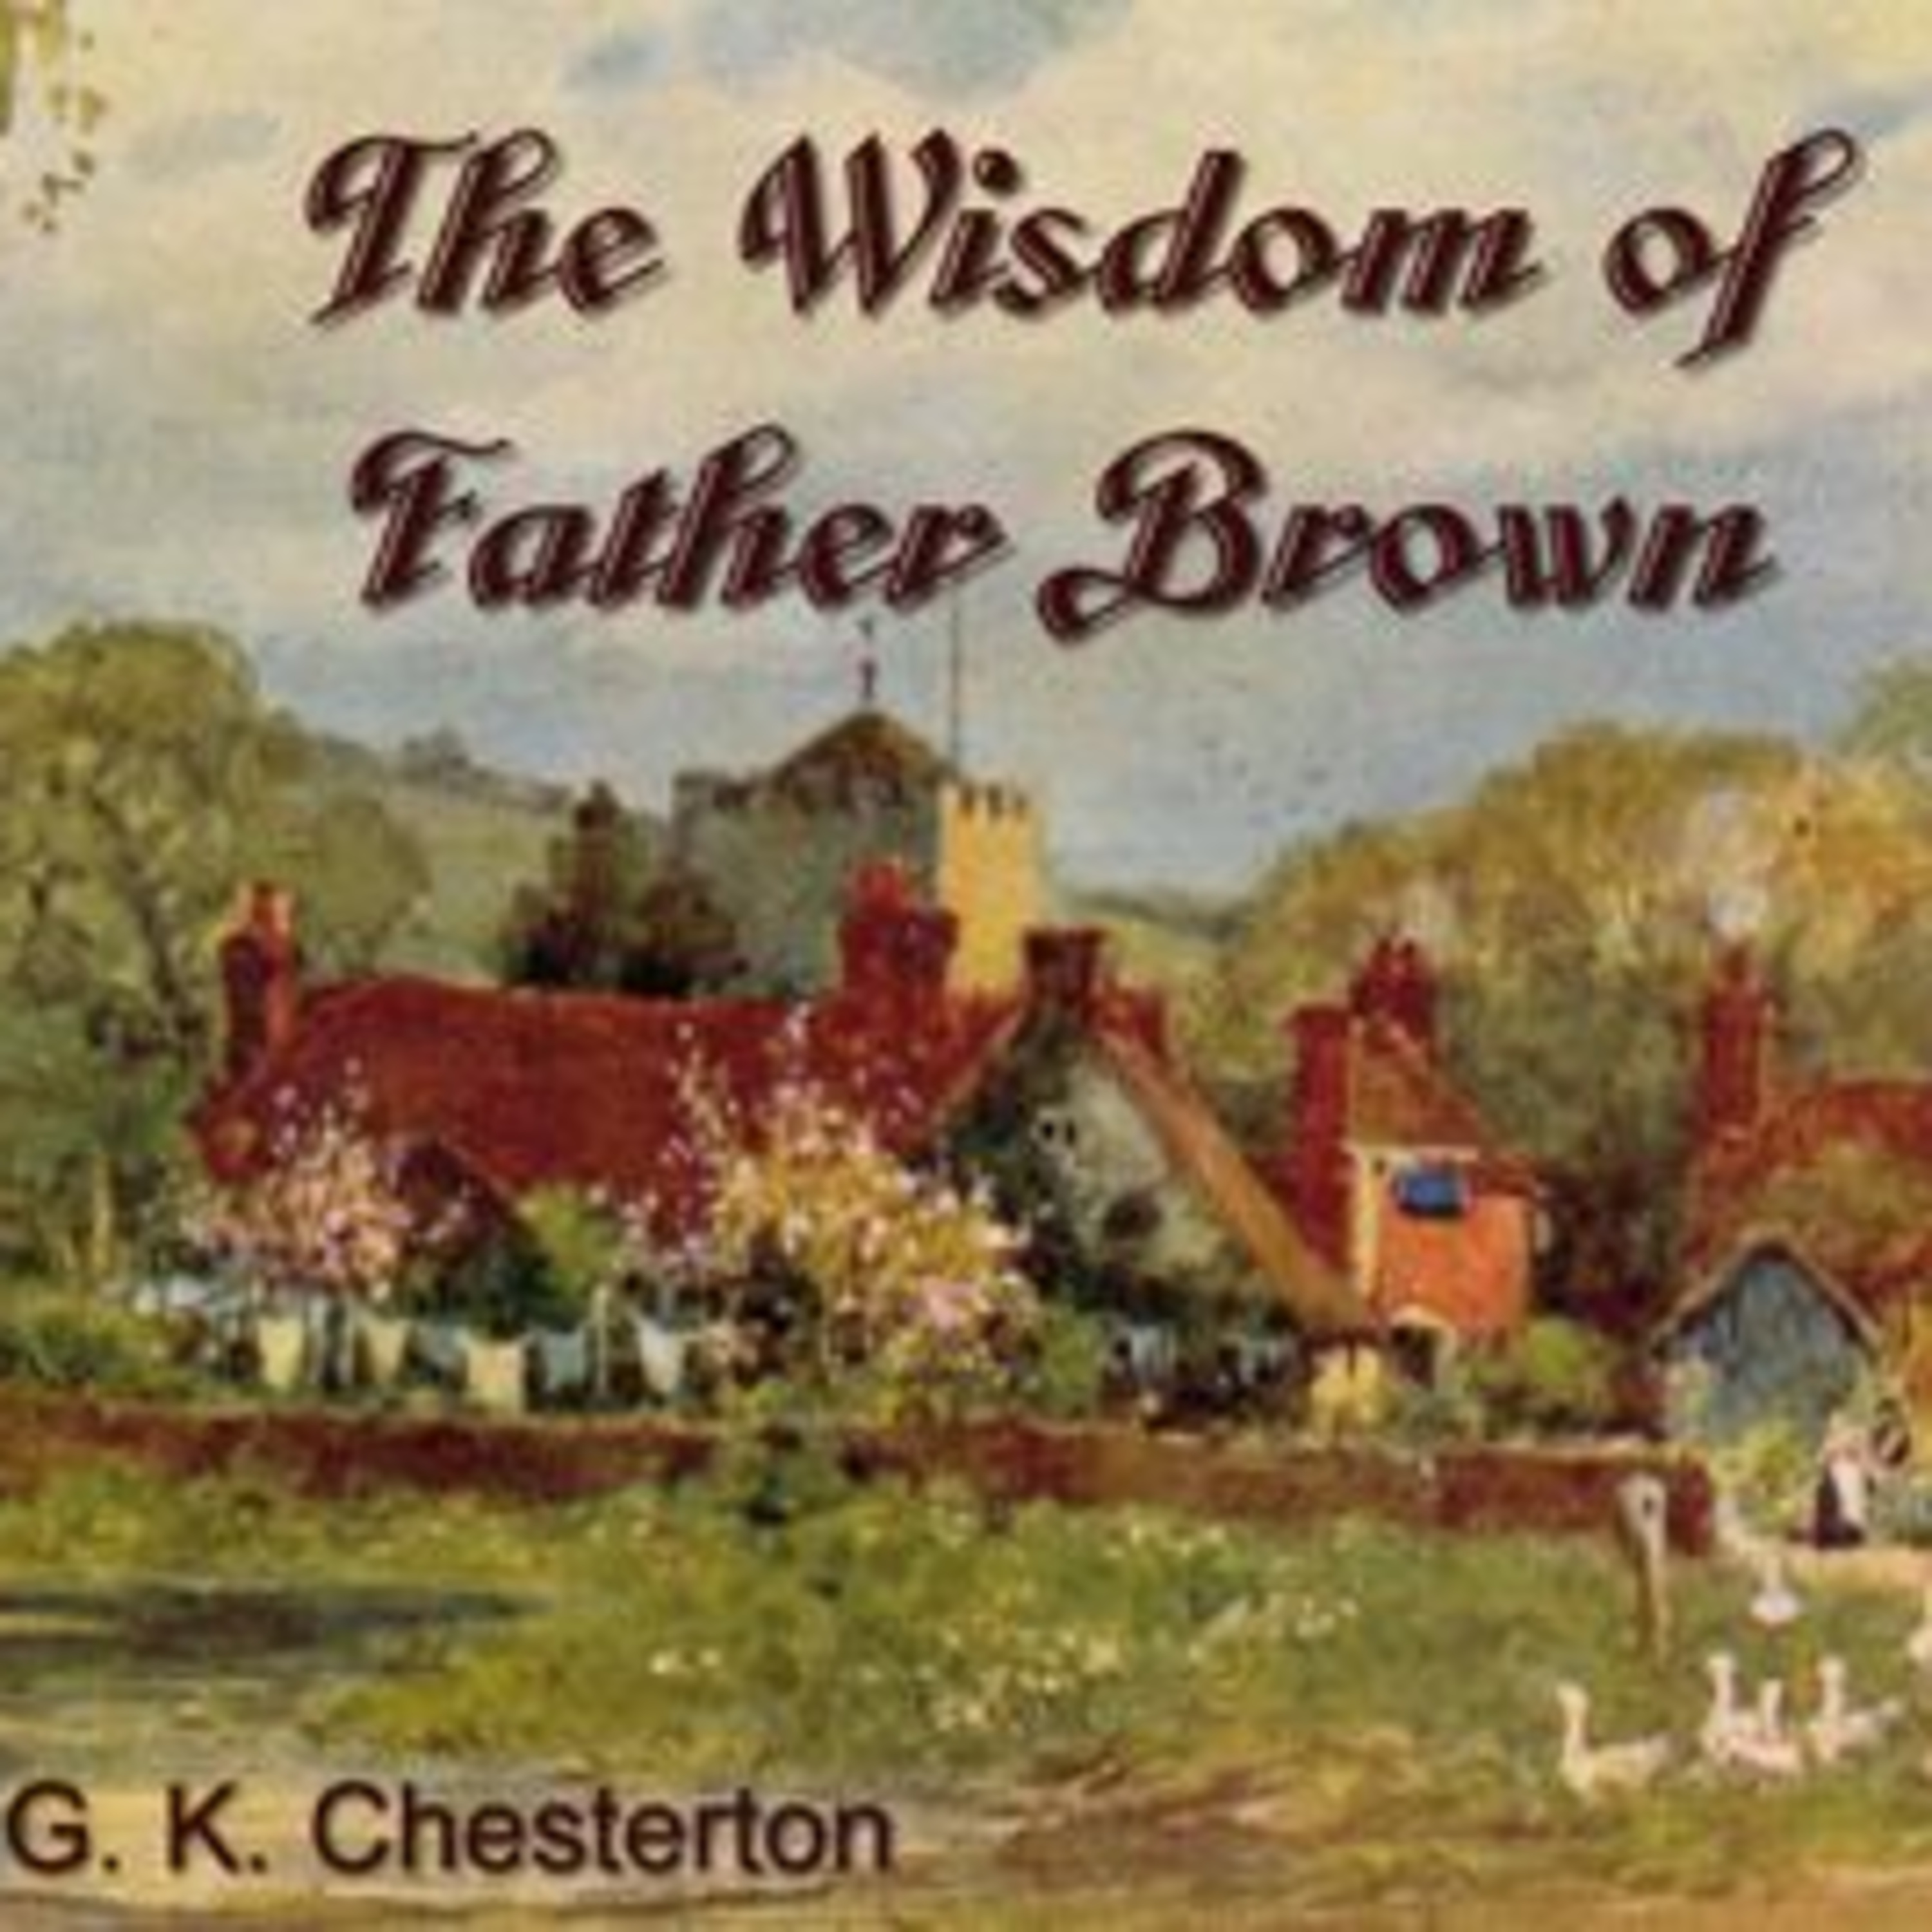 The Father Brown Mystery Cast - The Mistake of the Machine